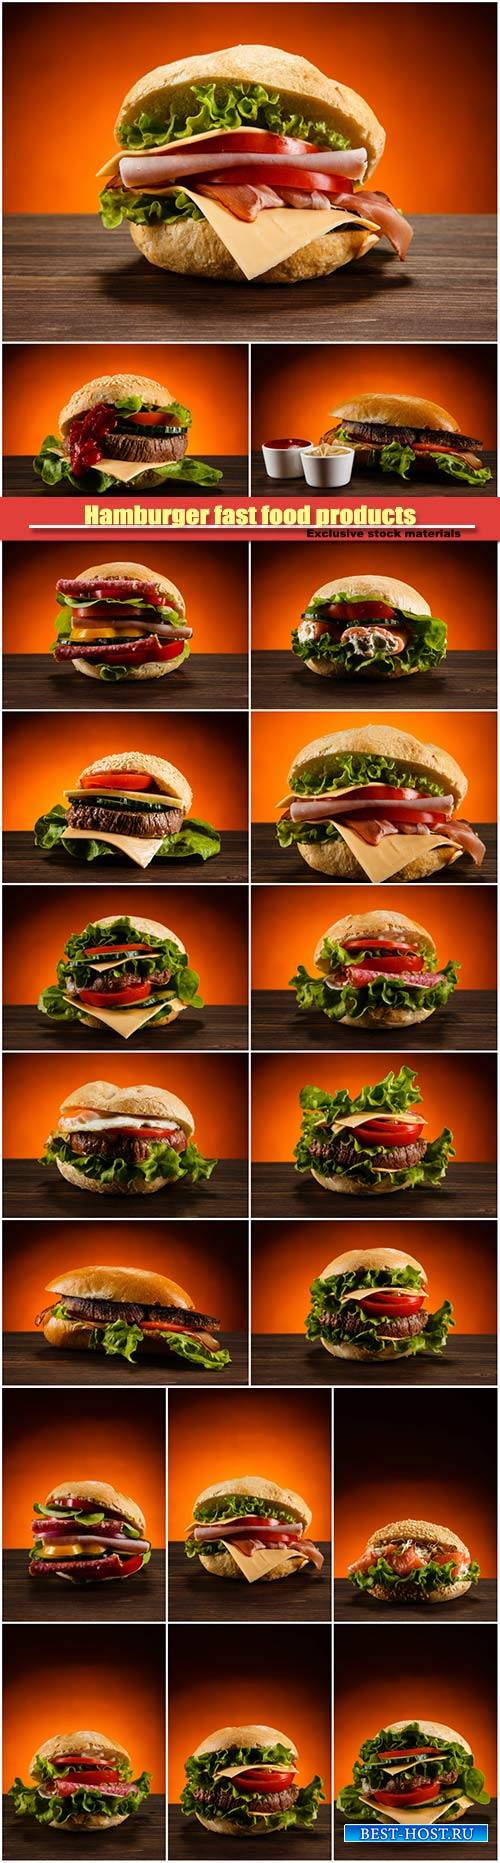 Hamburger fast food products